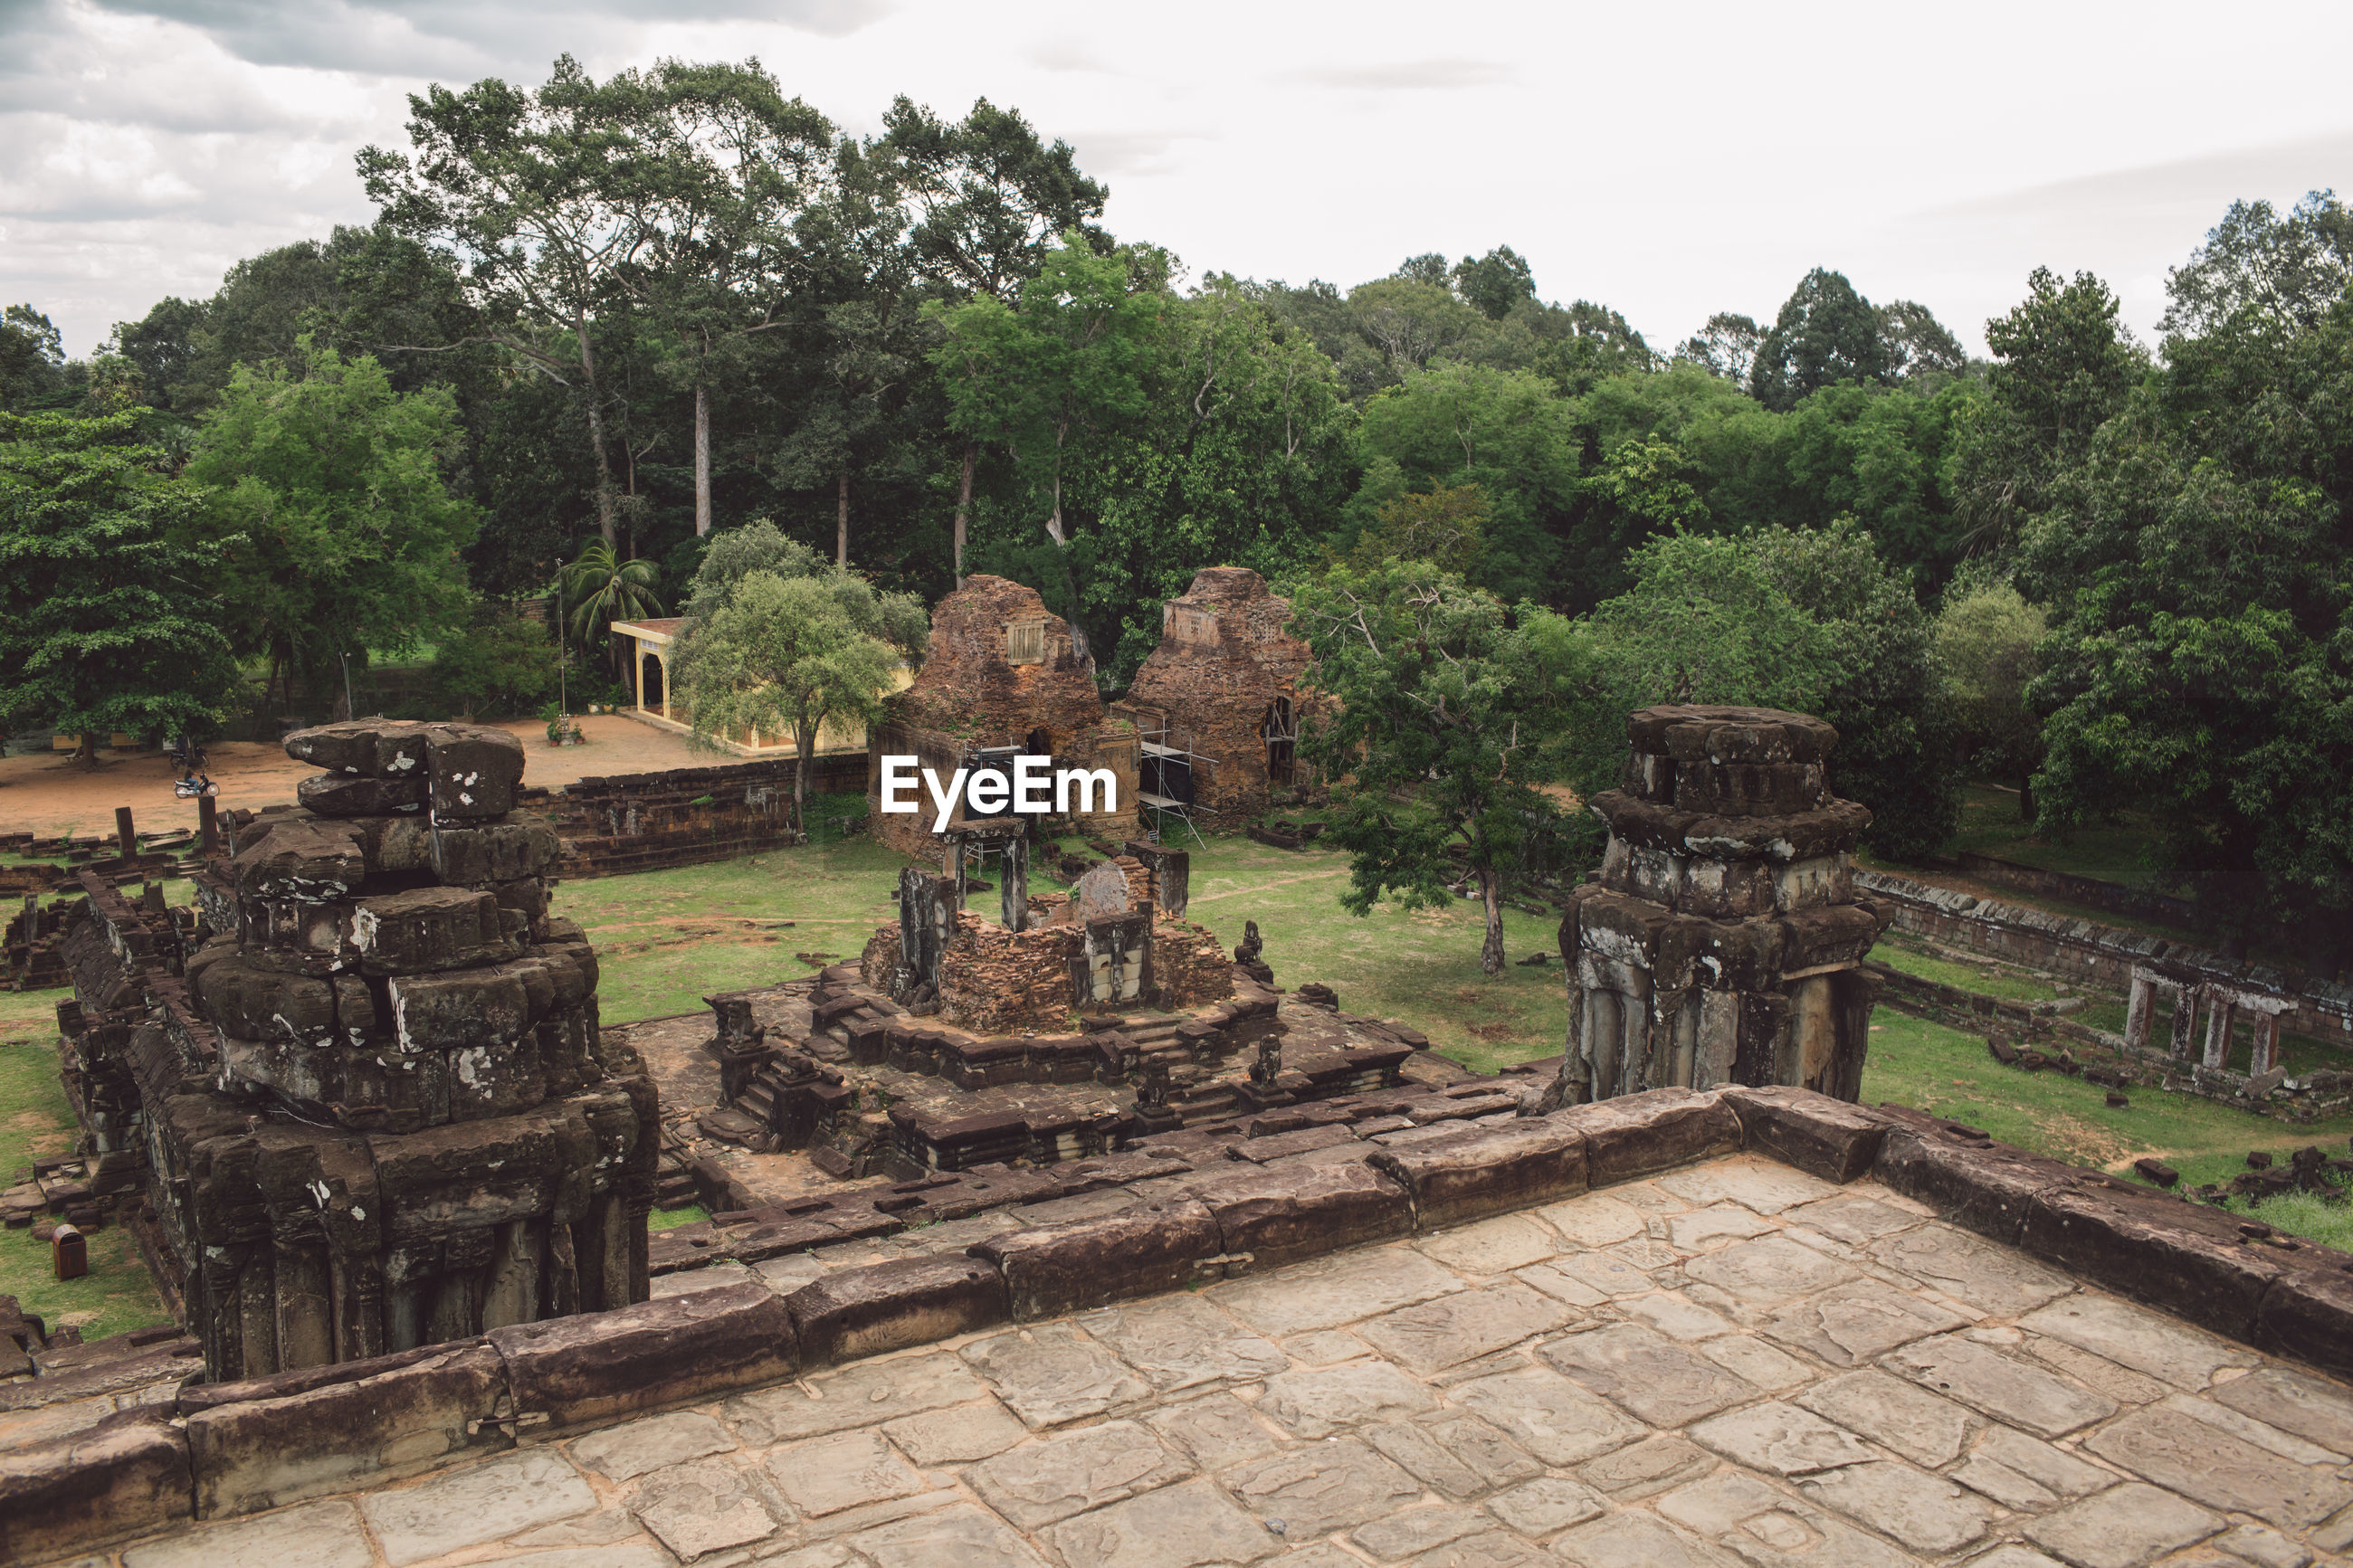 High angle view of old ruins amidst trees